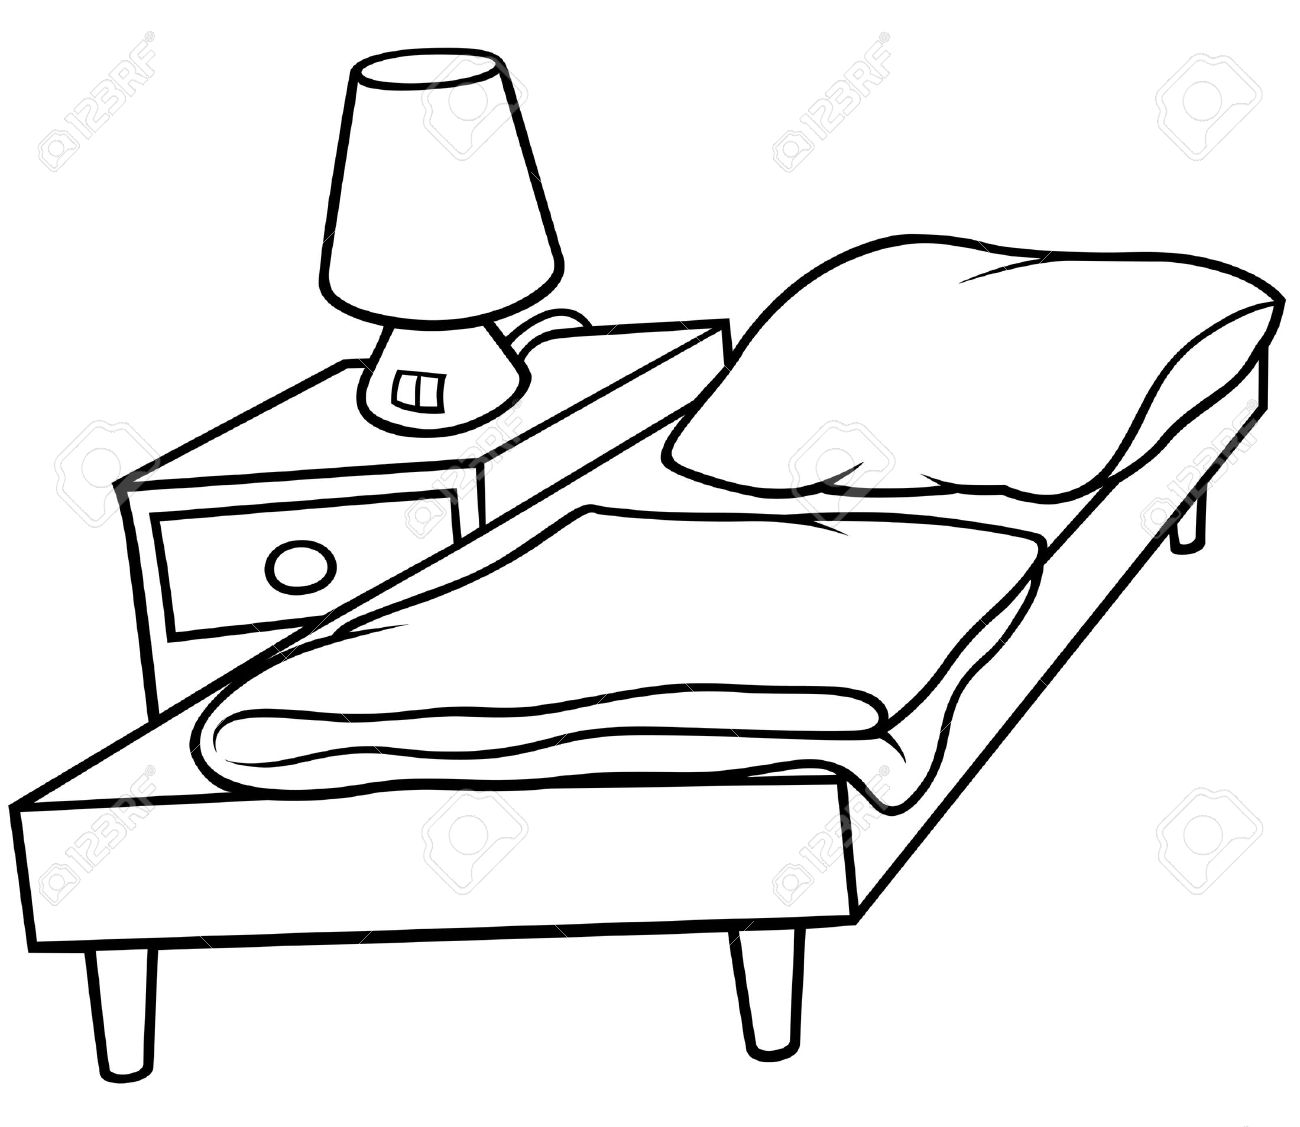 Bed And Bedside - Black And White Cartoo-Bed and Bedside - Black and White Cartoon illustration, Vector Stock Vector - 8756116-3